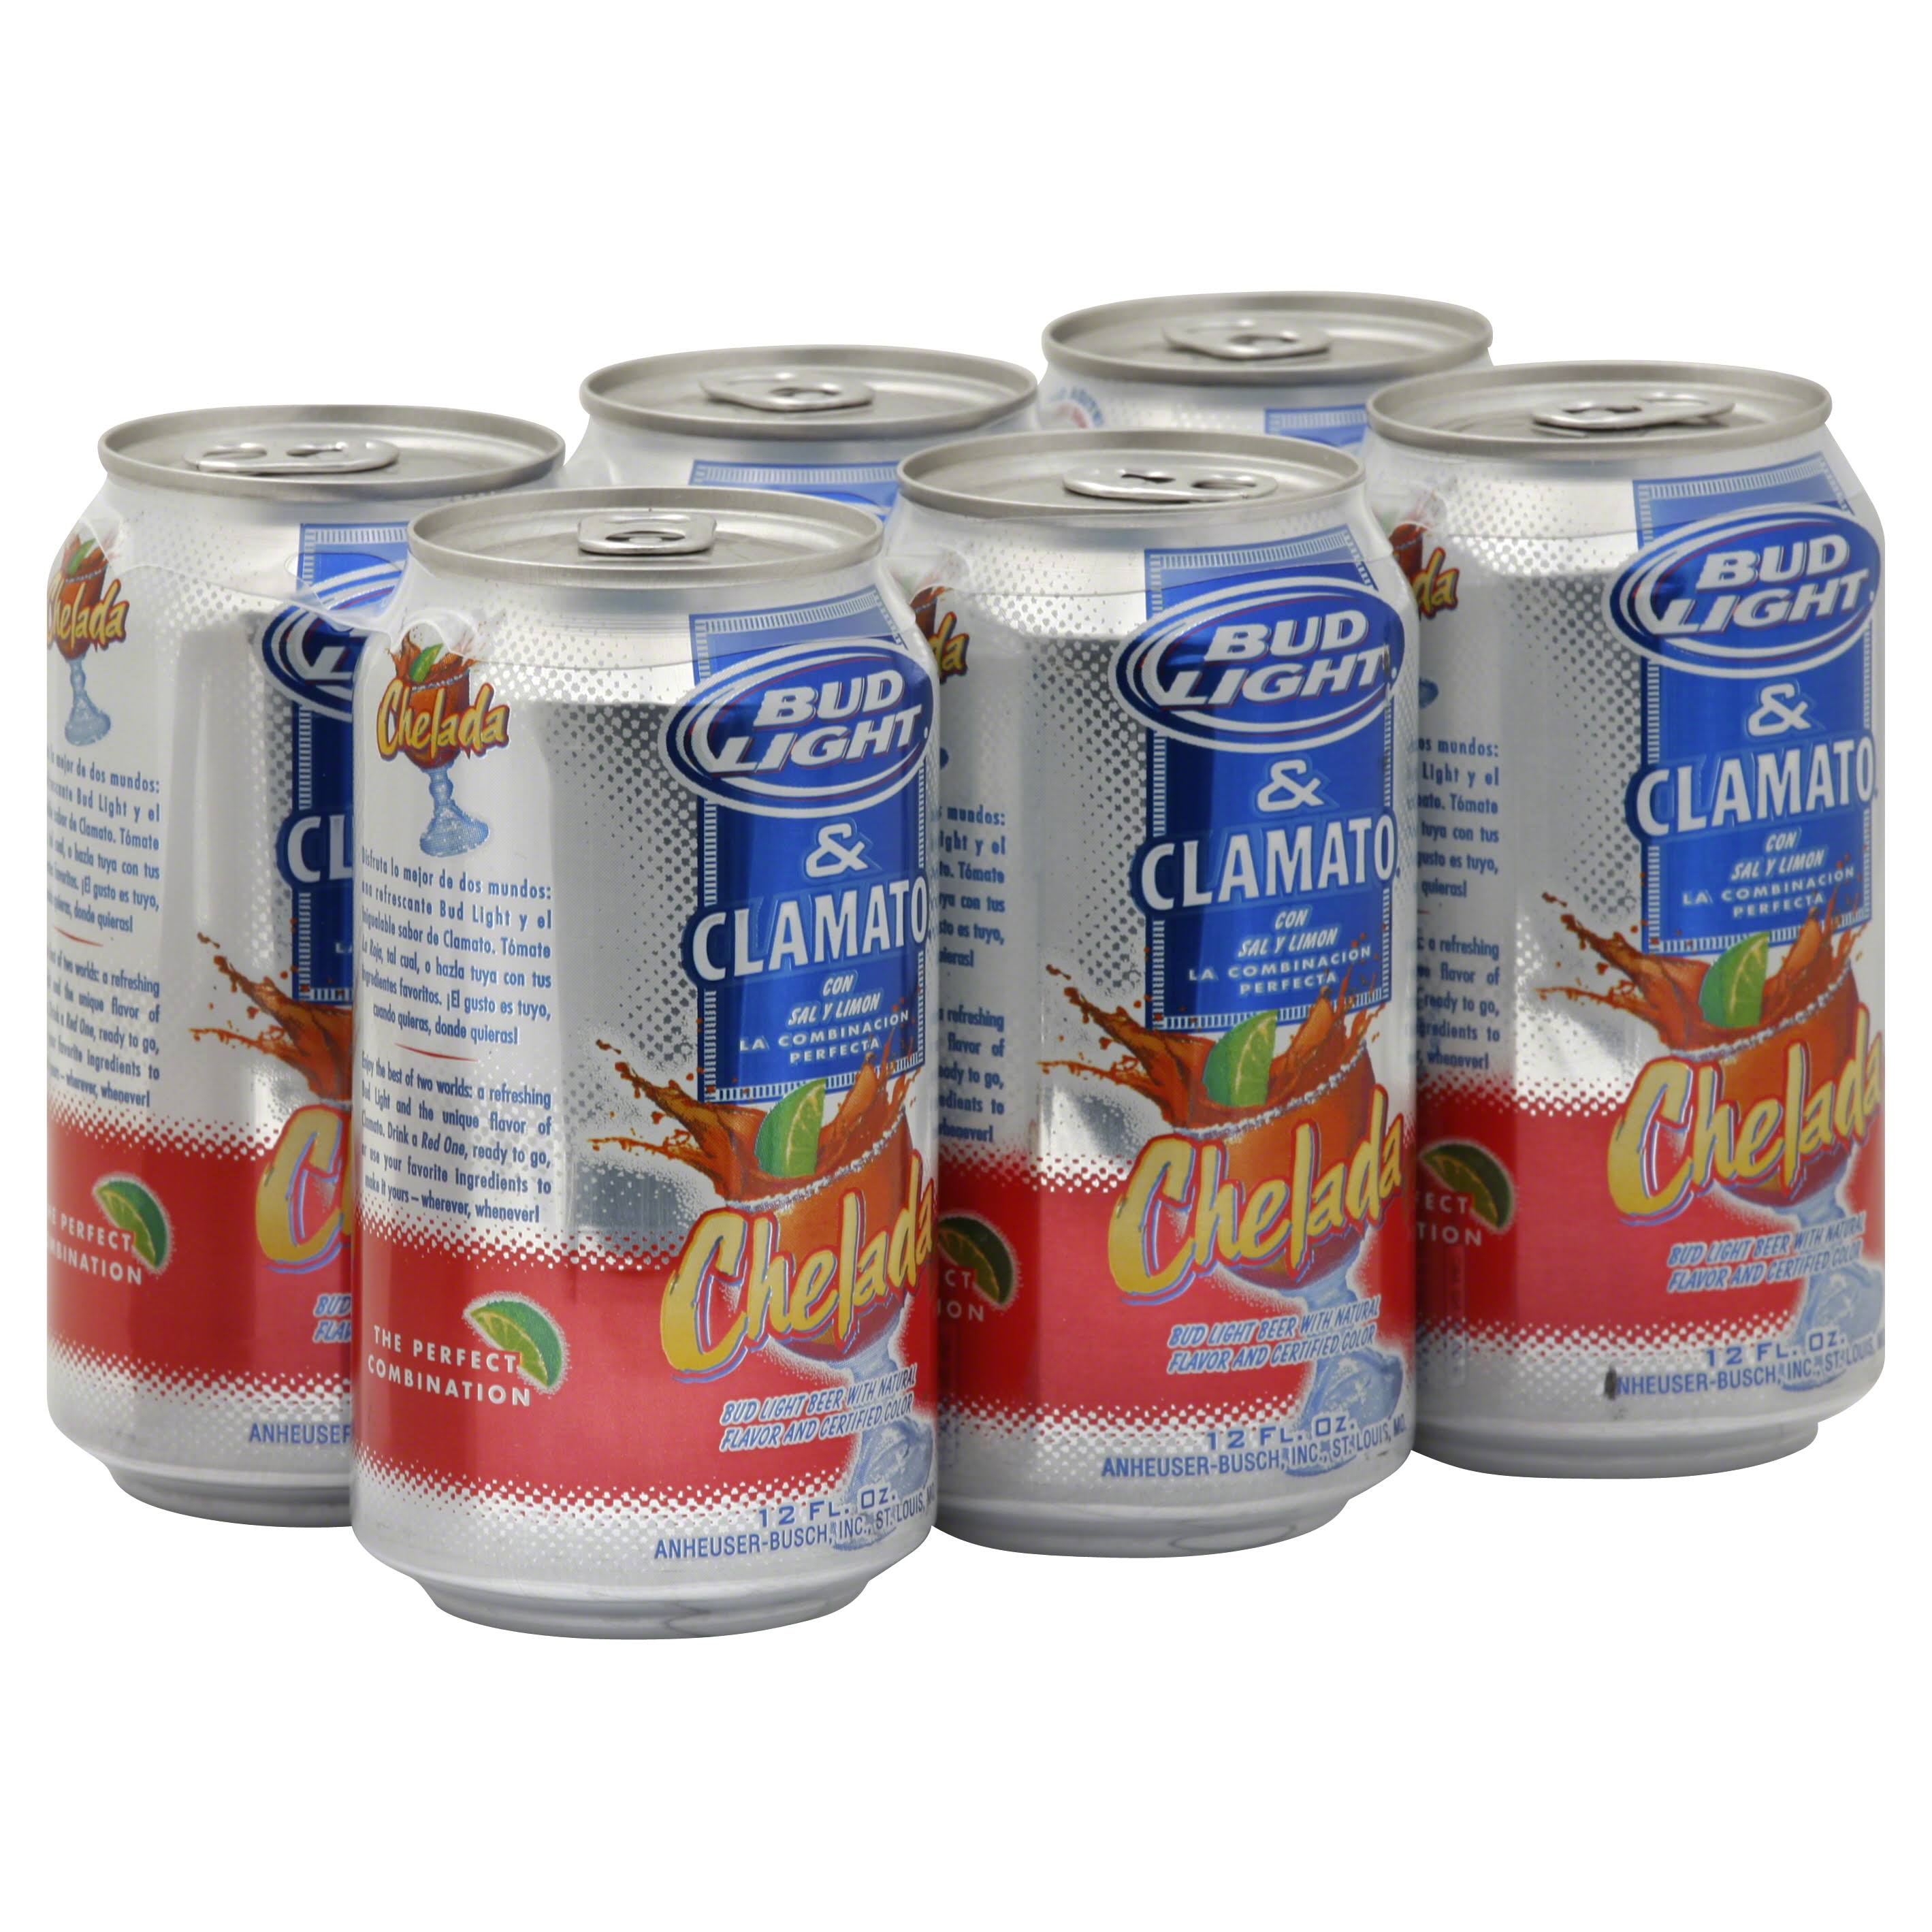 Bud Light & Clamato Chelada Beer - 6 Pack